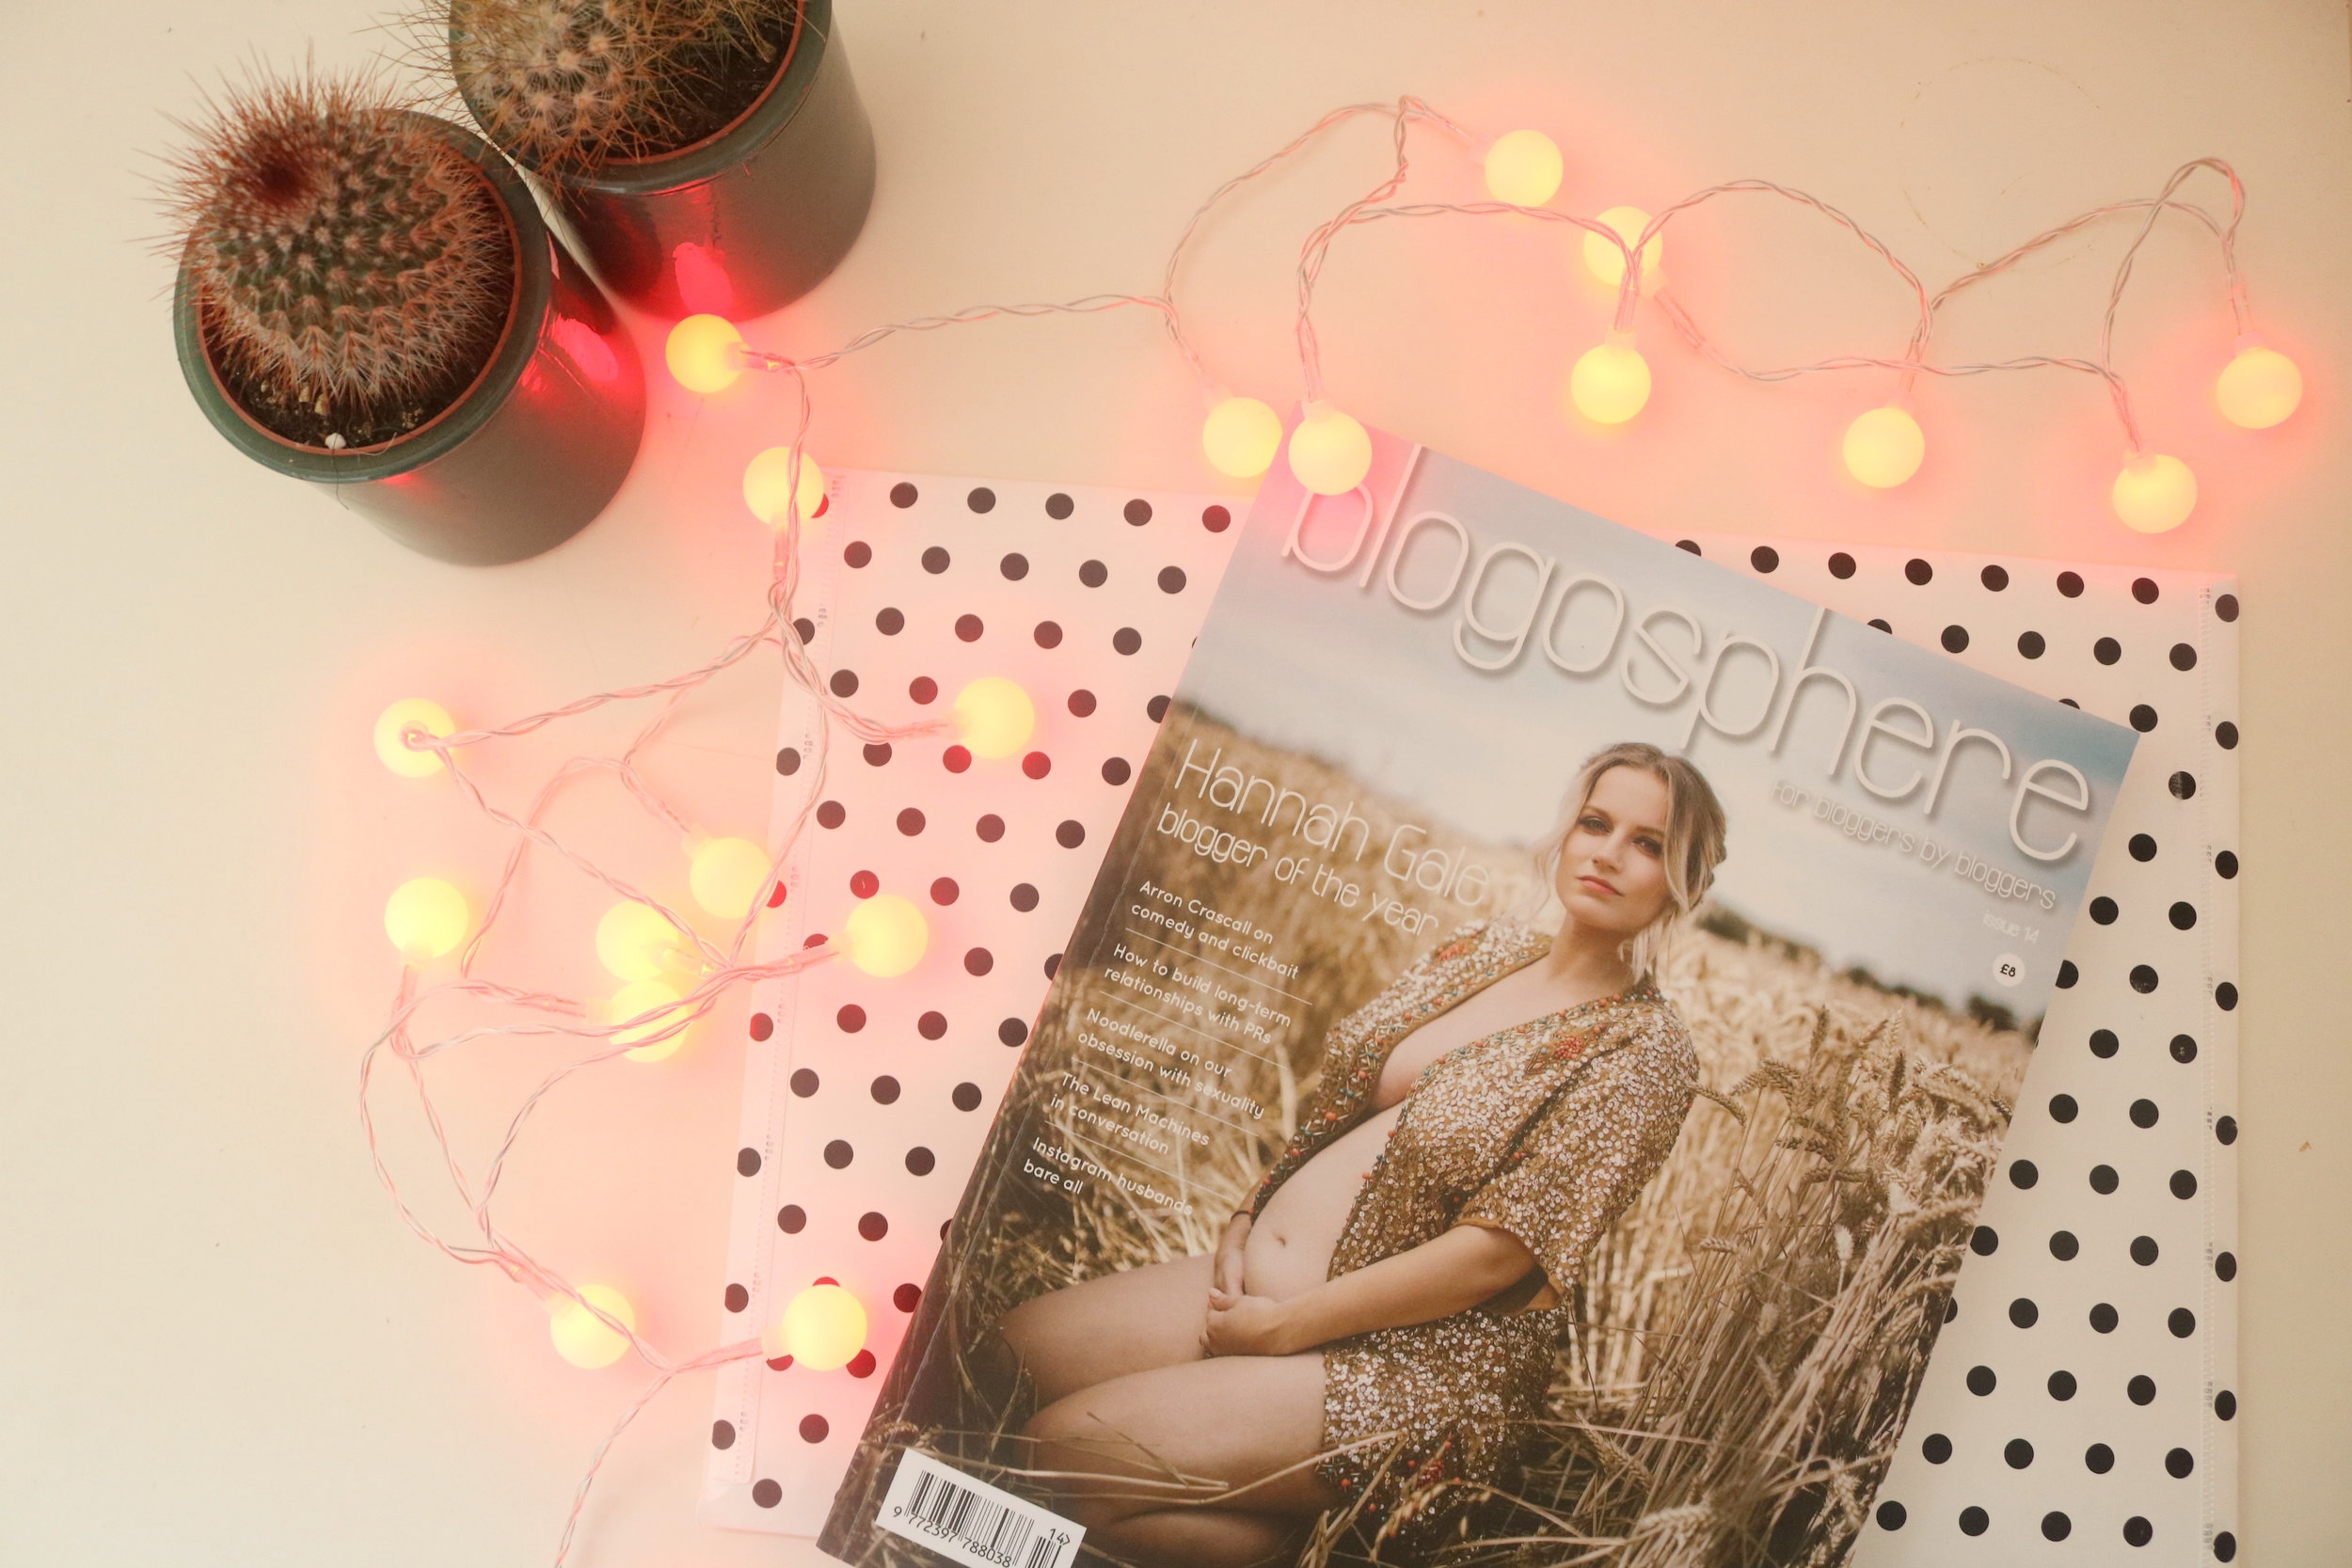 blogosphere magazine reasons to subscribe